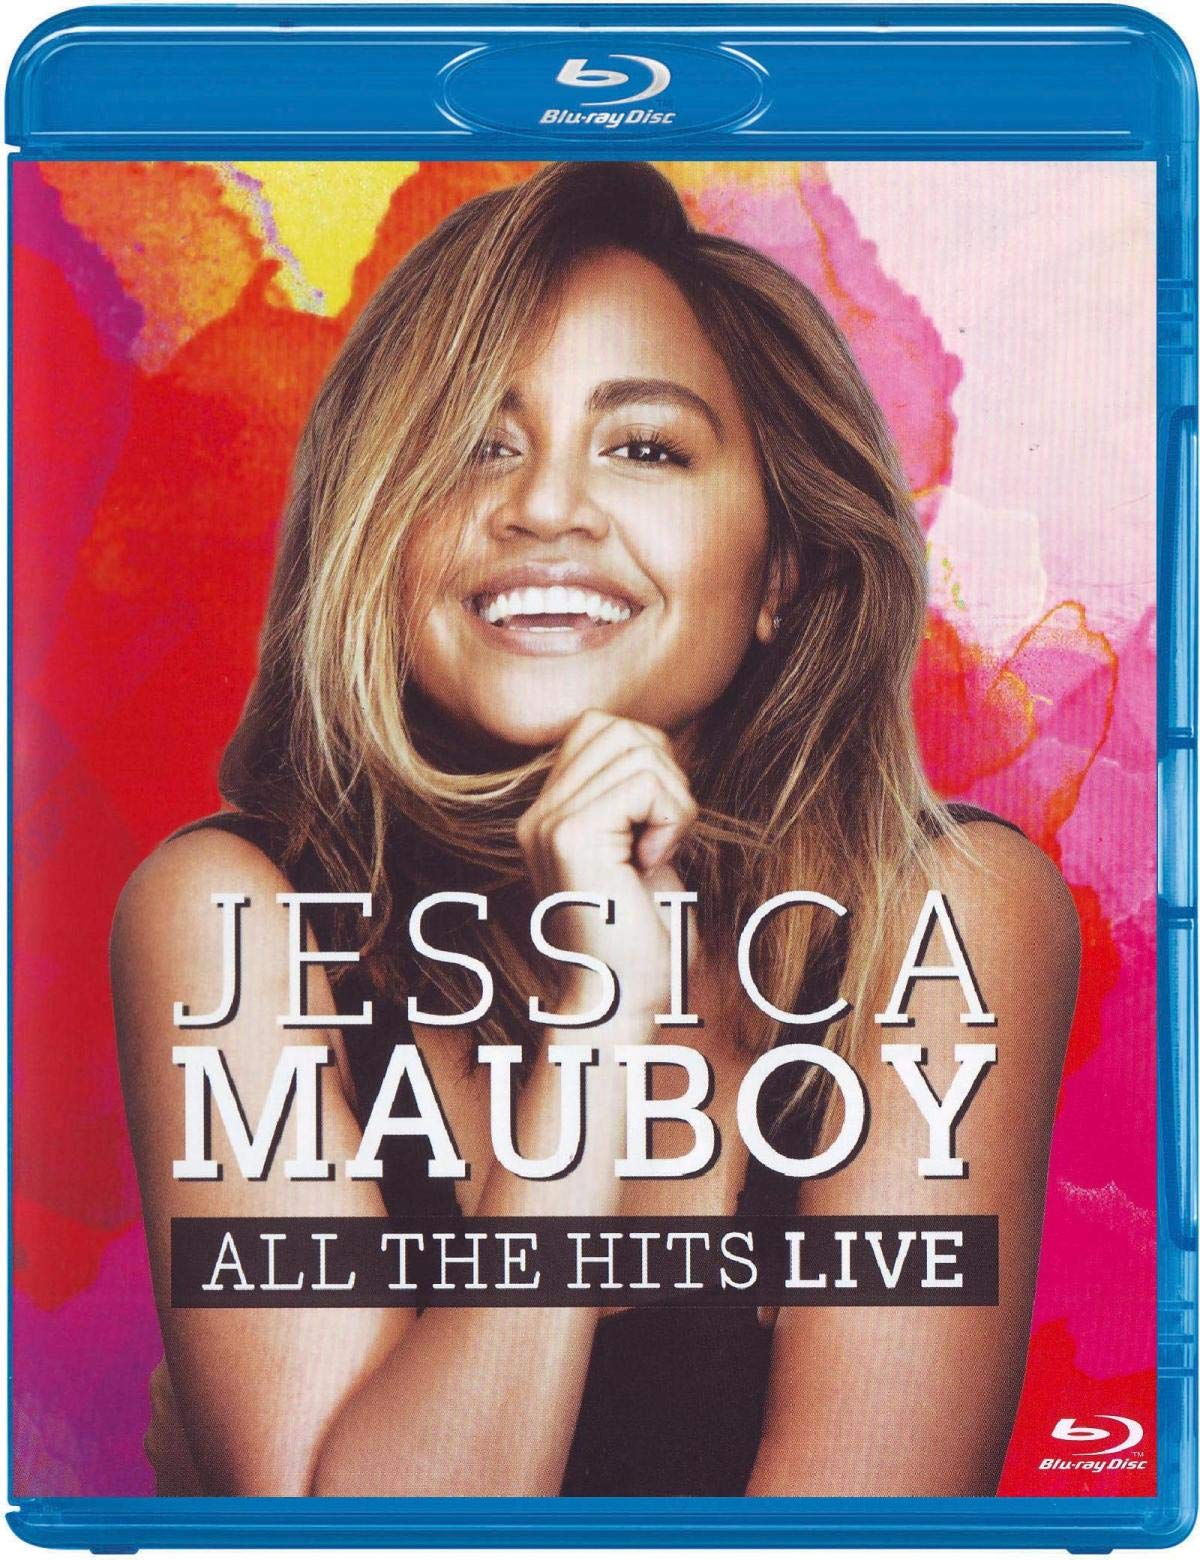 Blu-ray : MAUBOY, JESSICA - All The Hits Live (Australia - Import)